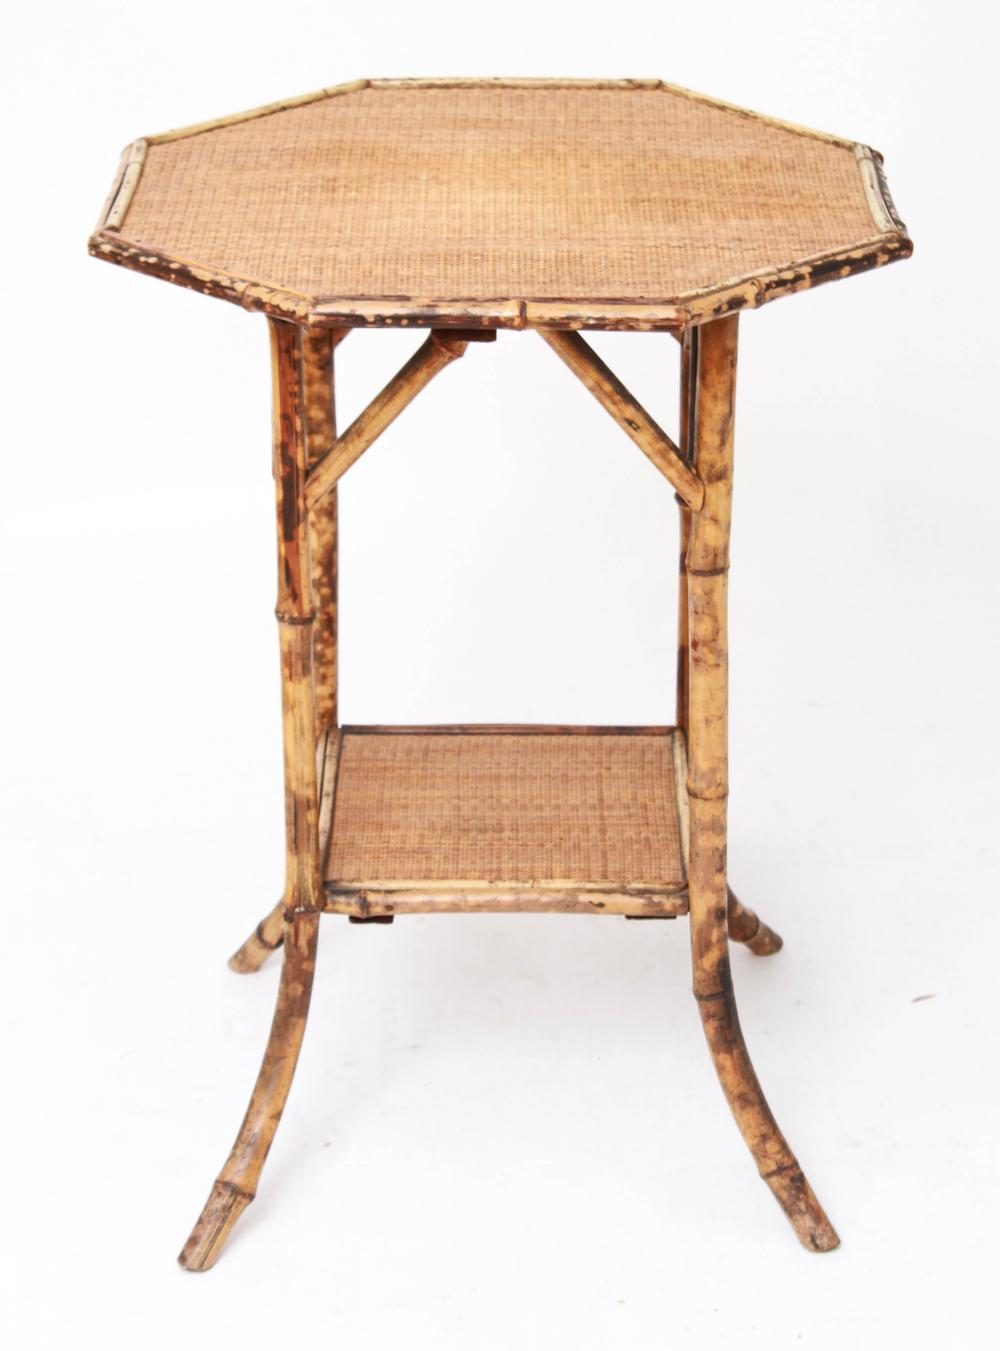 Sold Price Aesthetic Mvt Octagonal Bamboo Rattan Side Table Invalid Date Edt